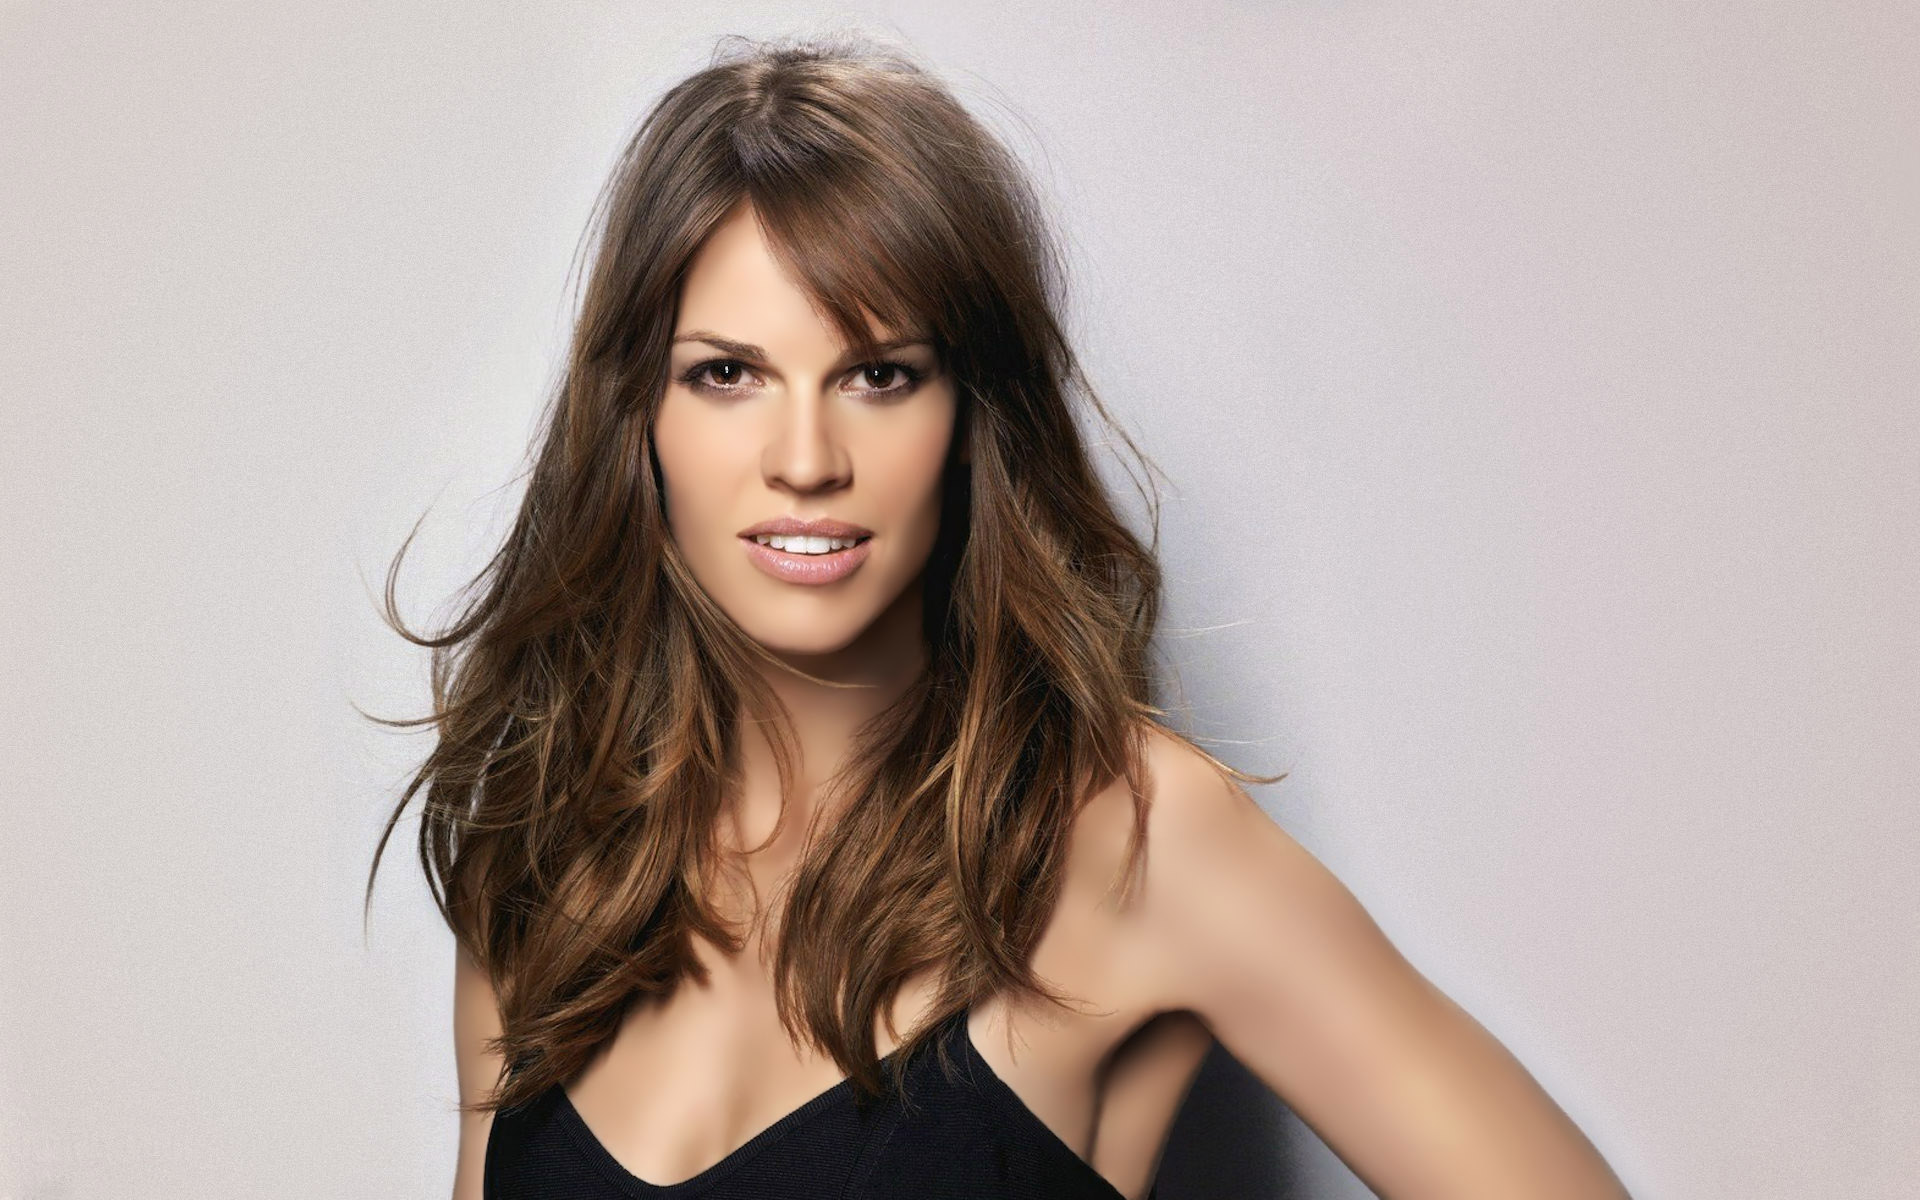 Hilary-Swank-Desktop-Wallpapers-Download